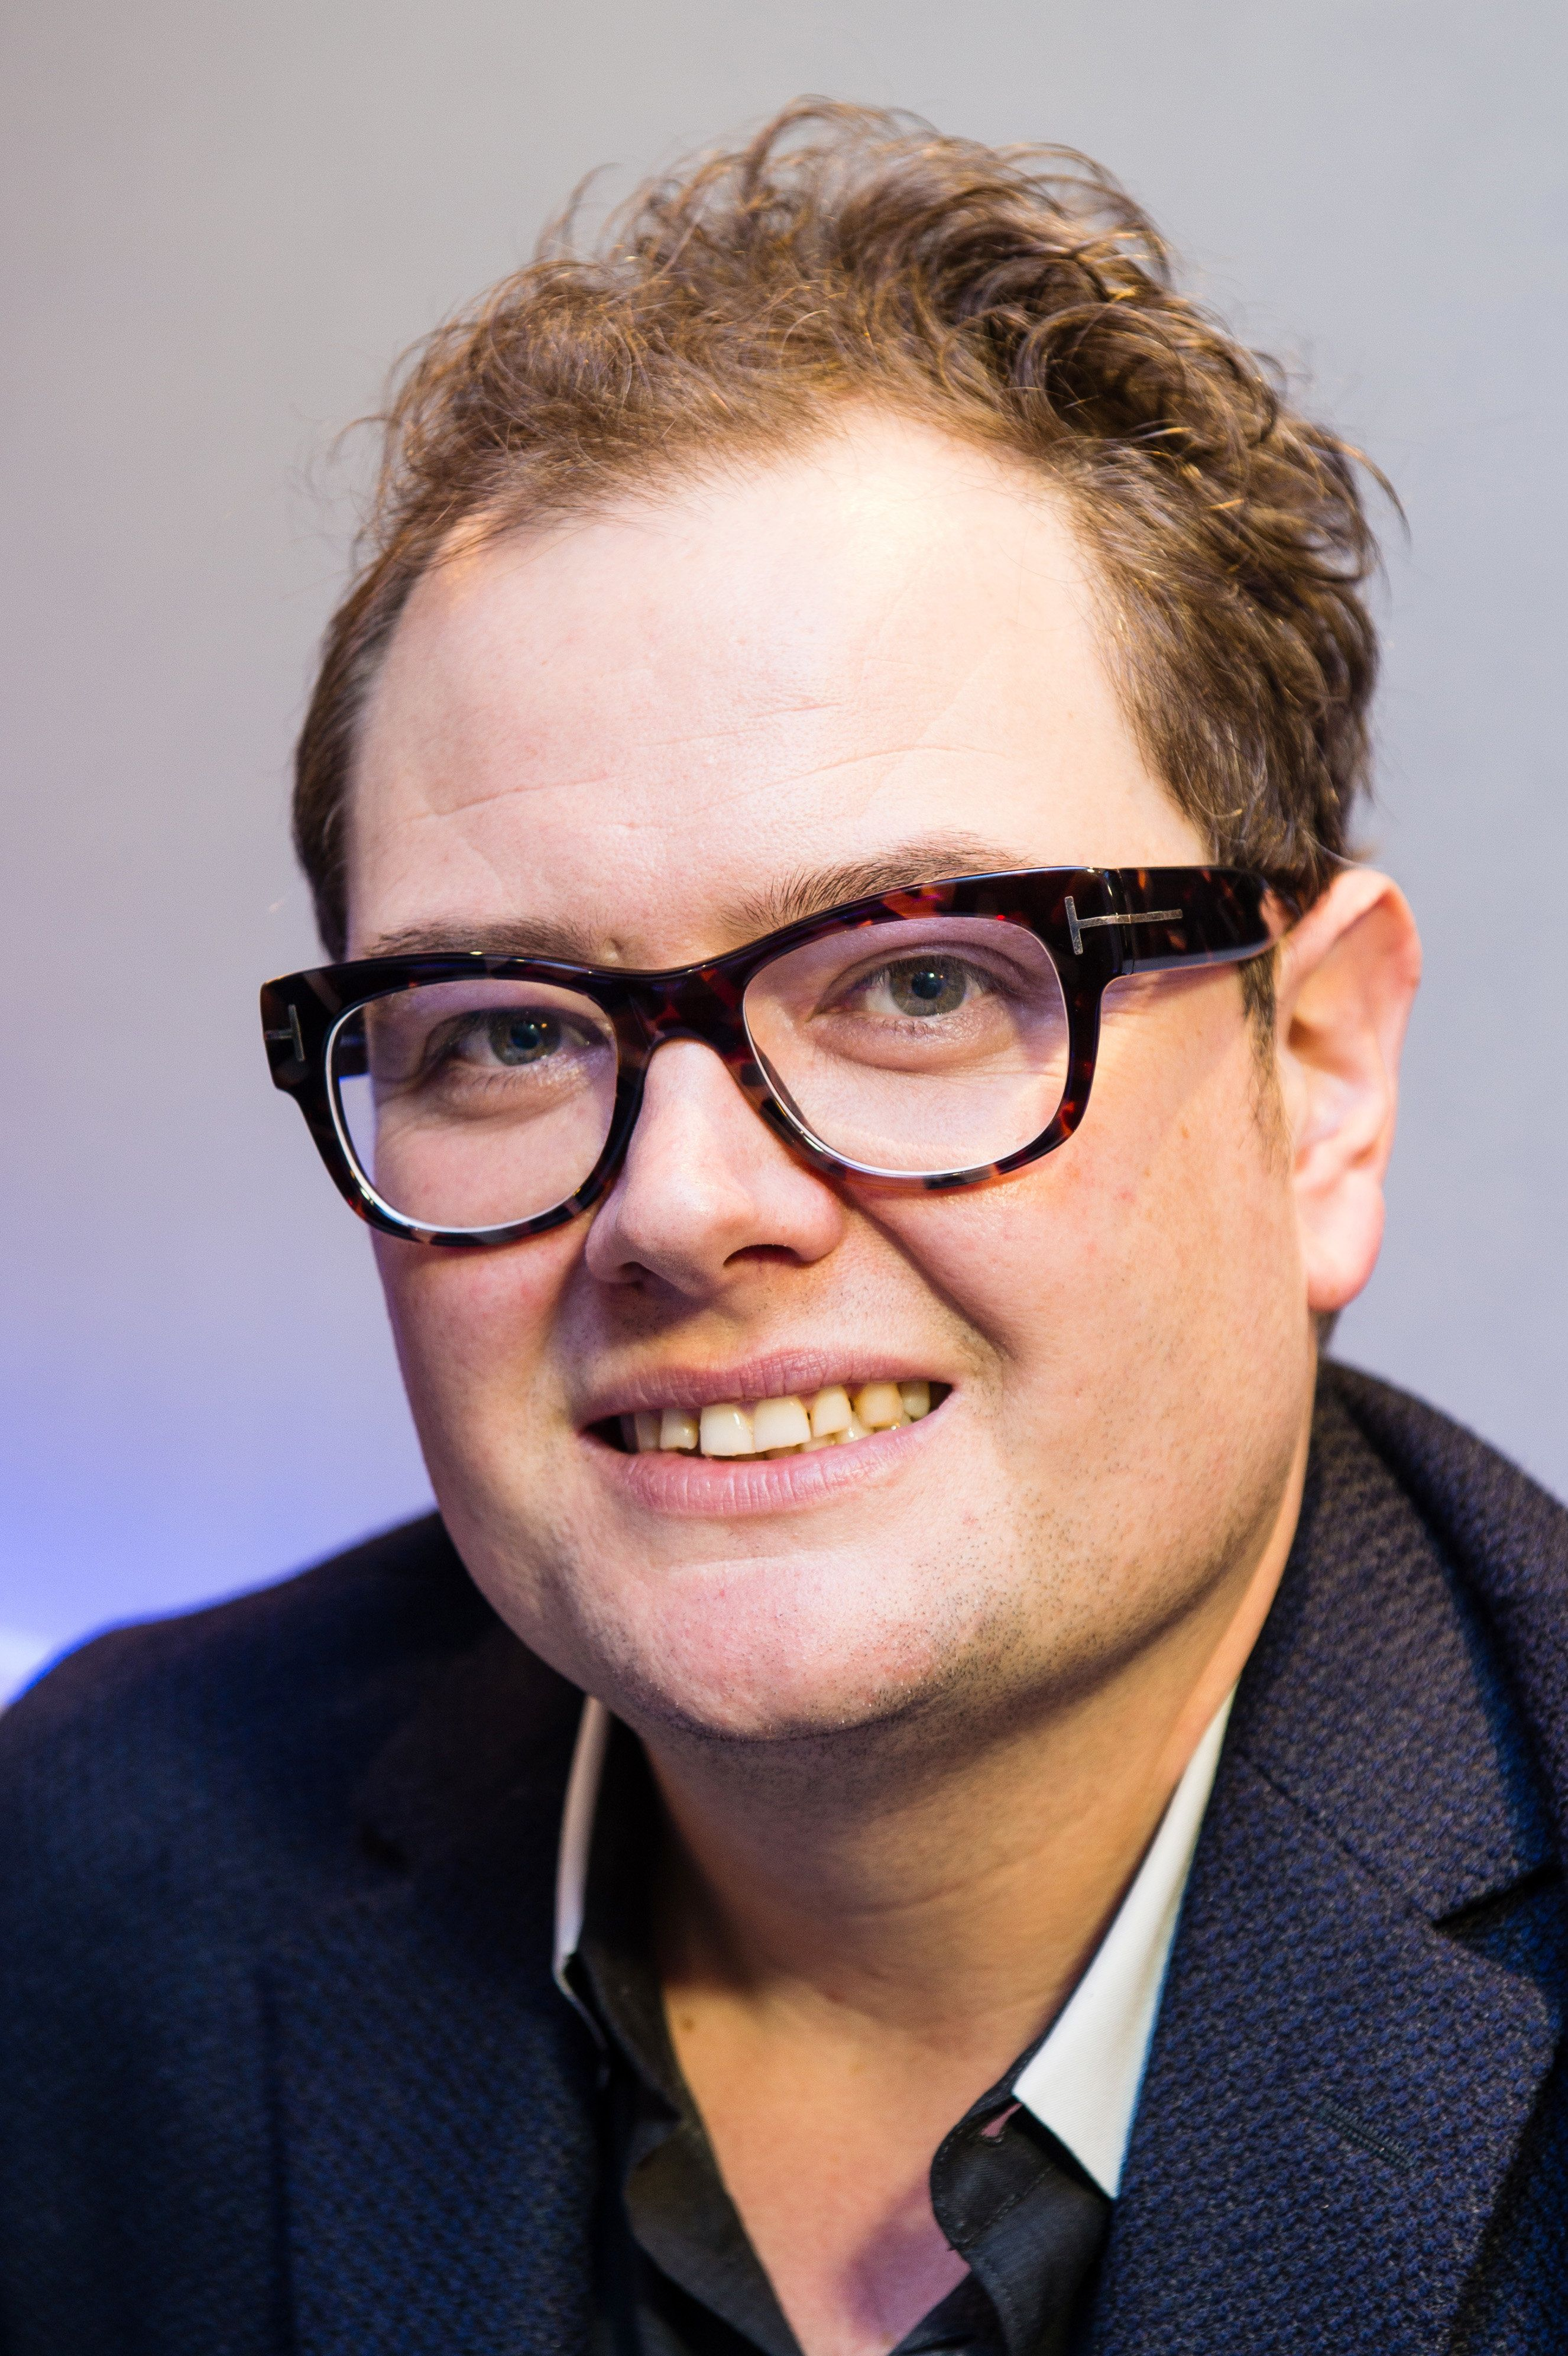 Alan Carr reveals some of the worst slurs on his personality have come from within the gay